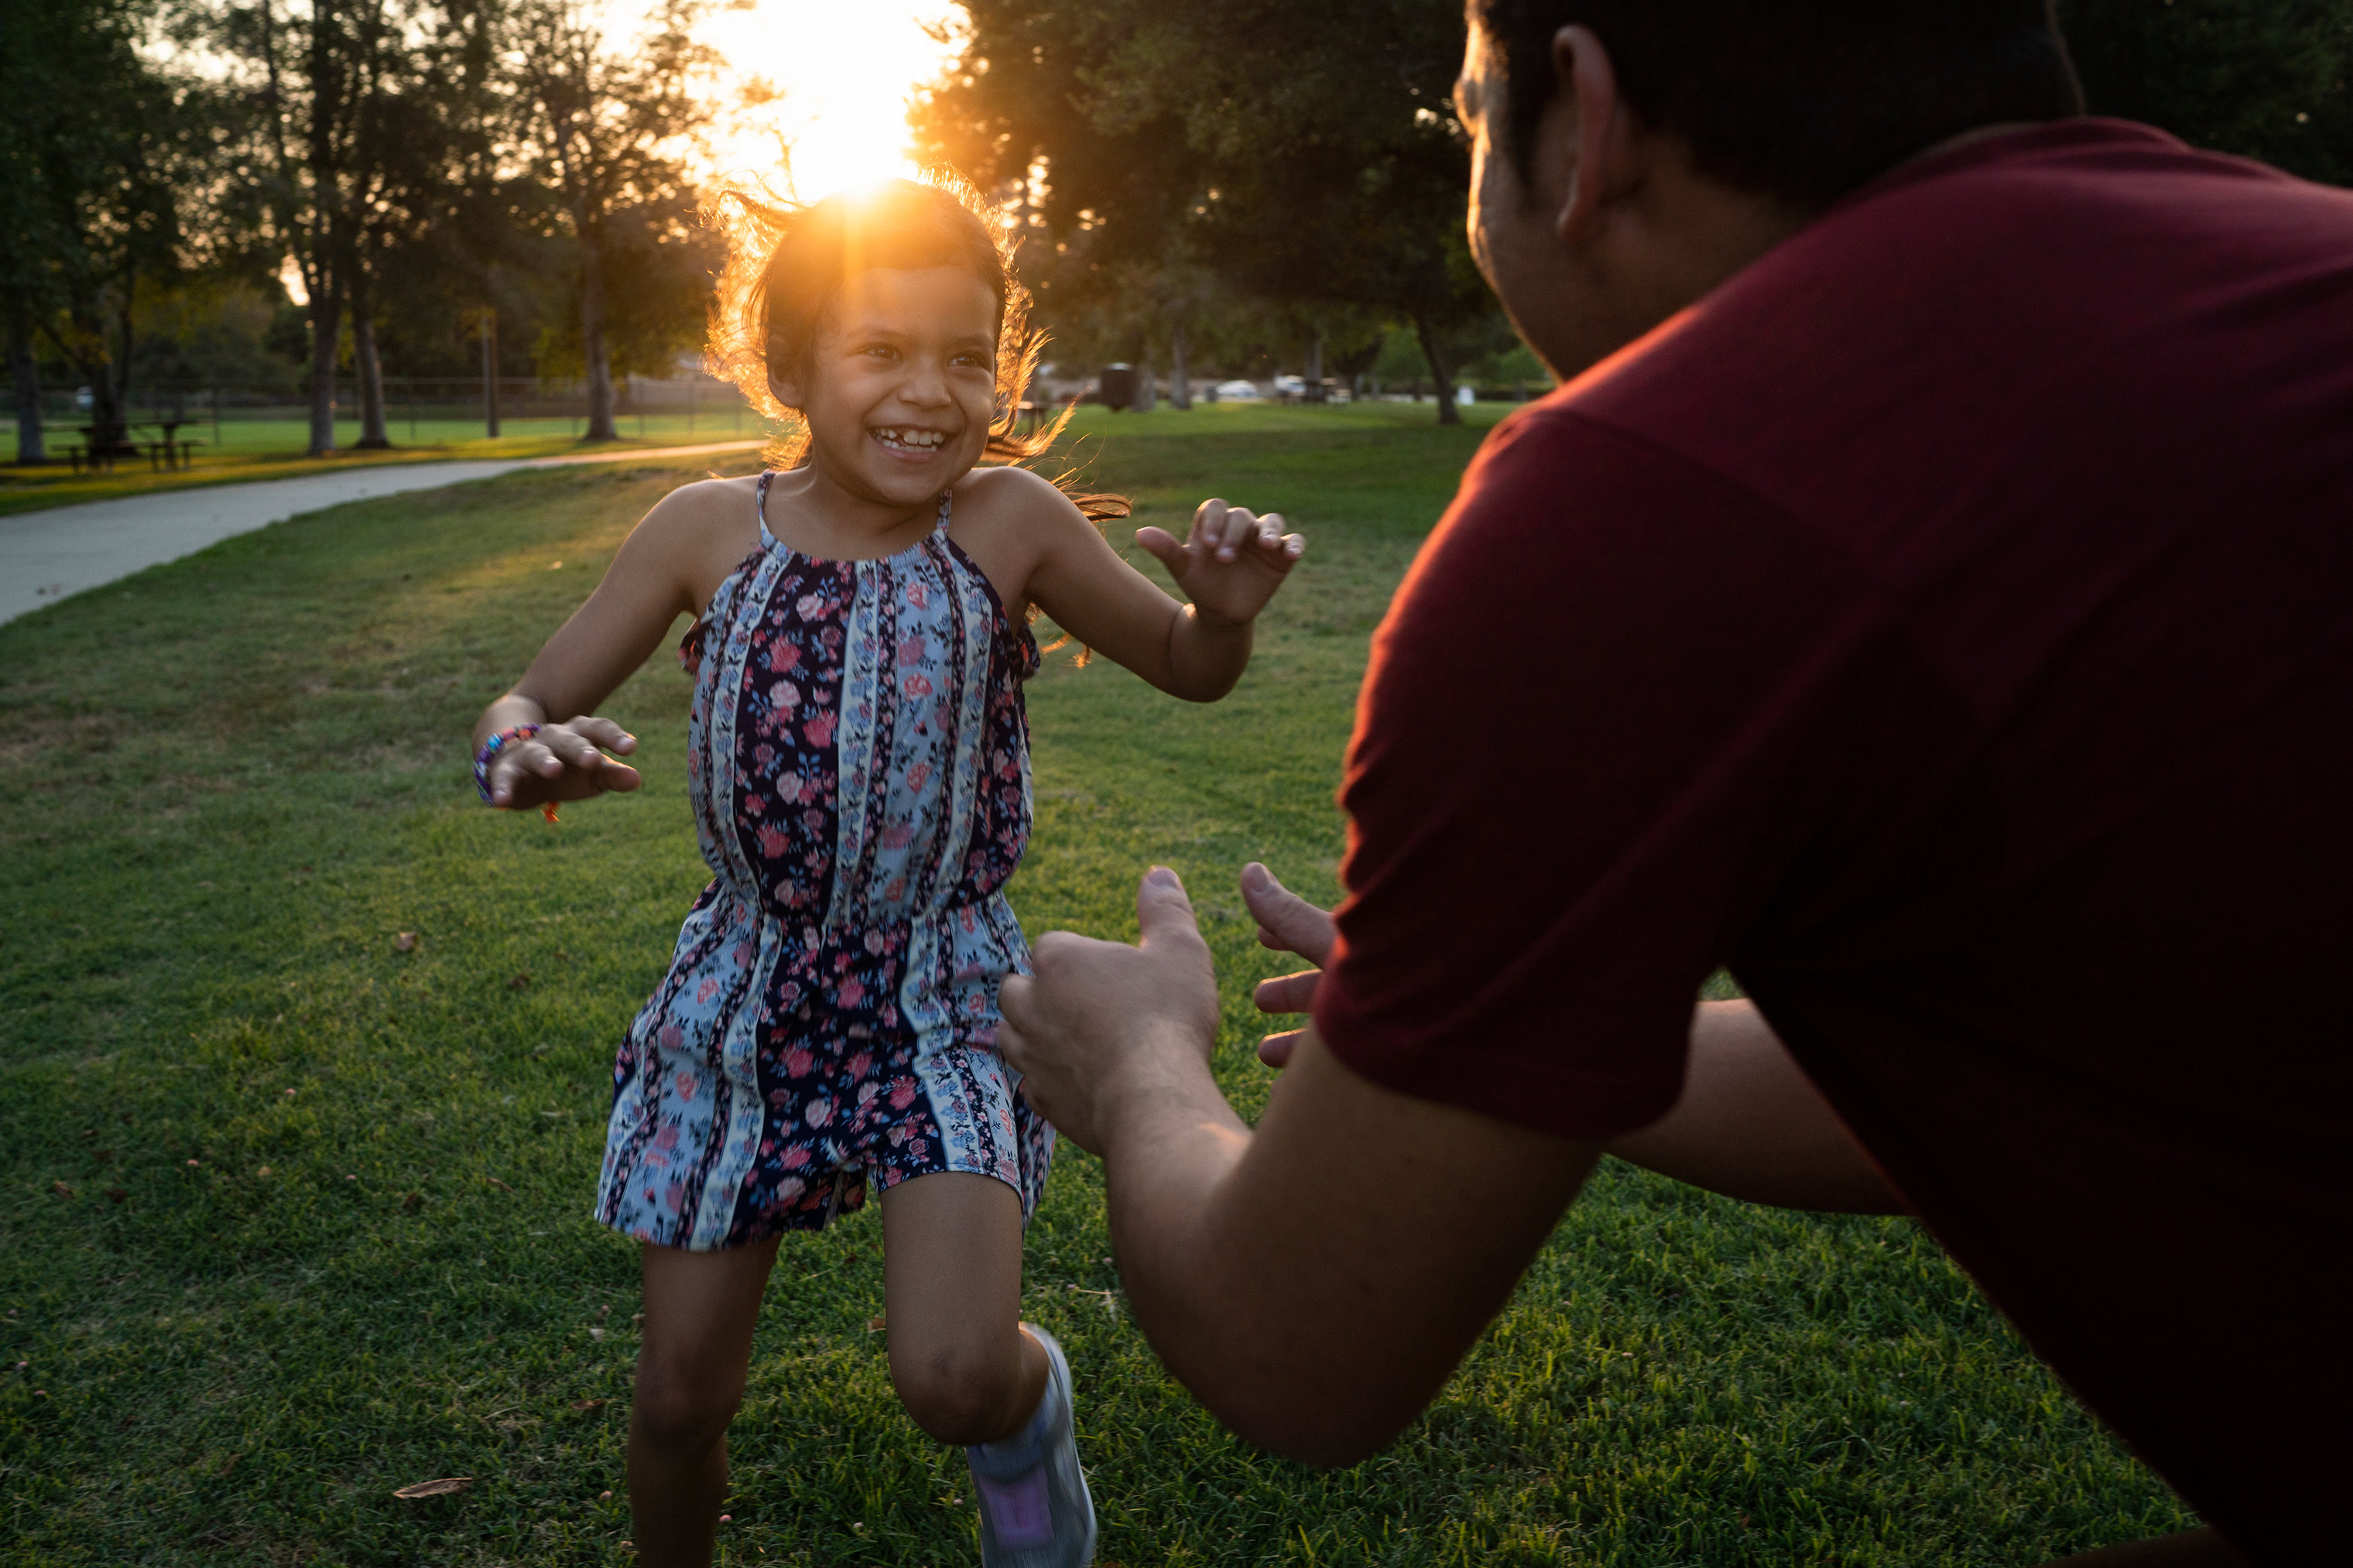 Heyli and her father play together at a park near their temporary home in Southern California.